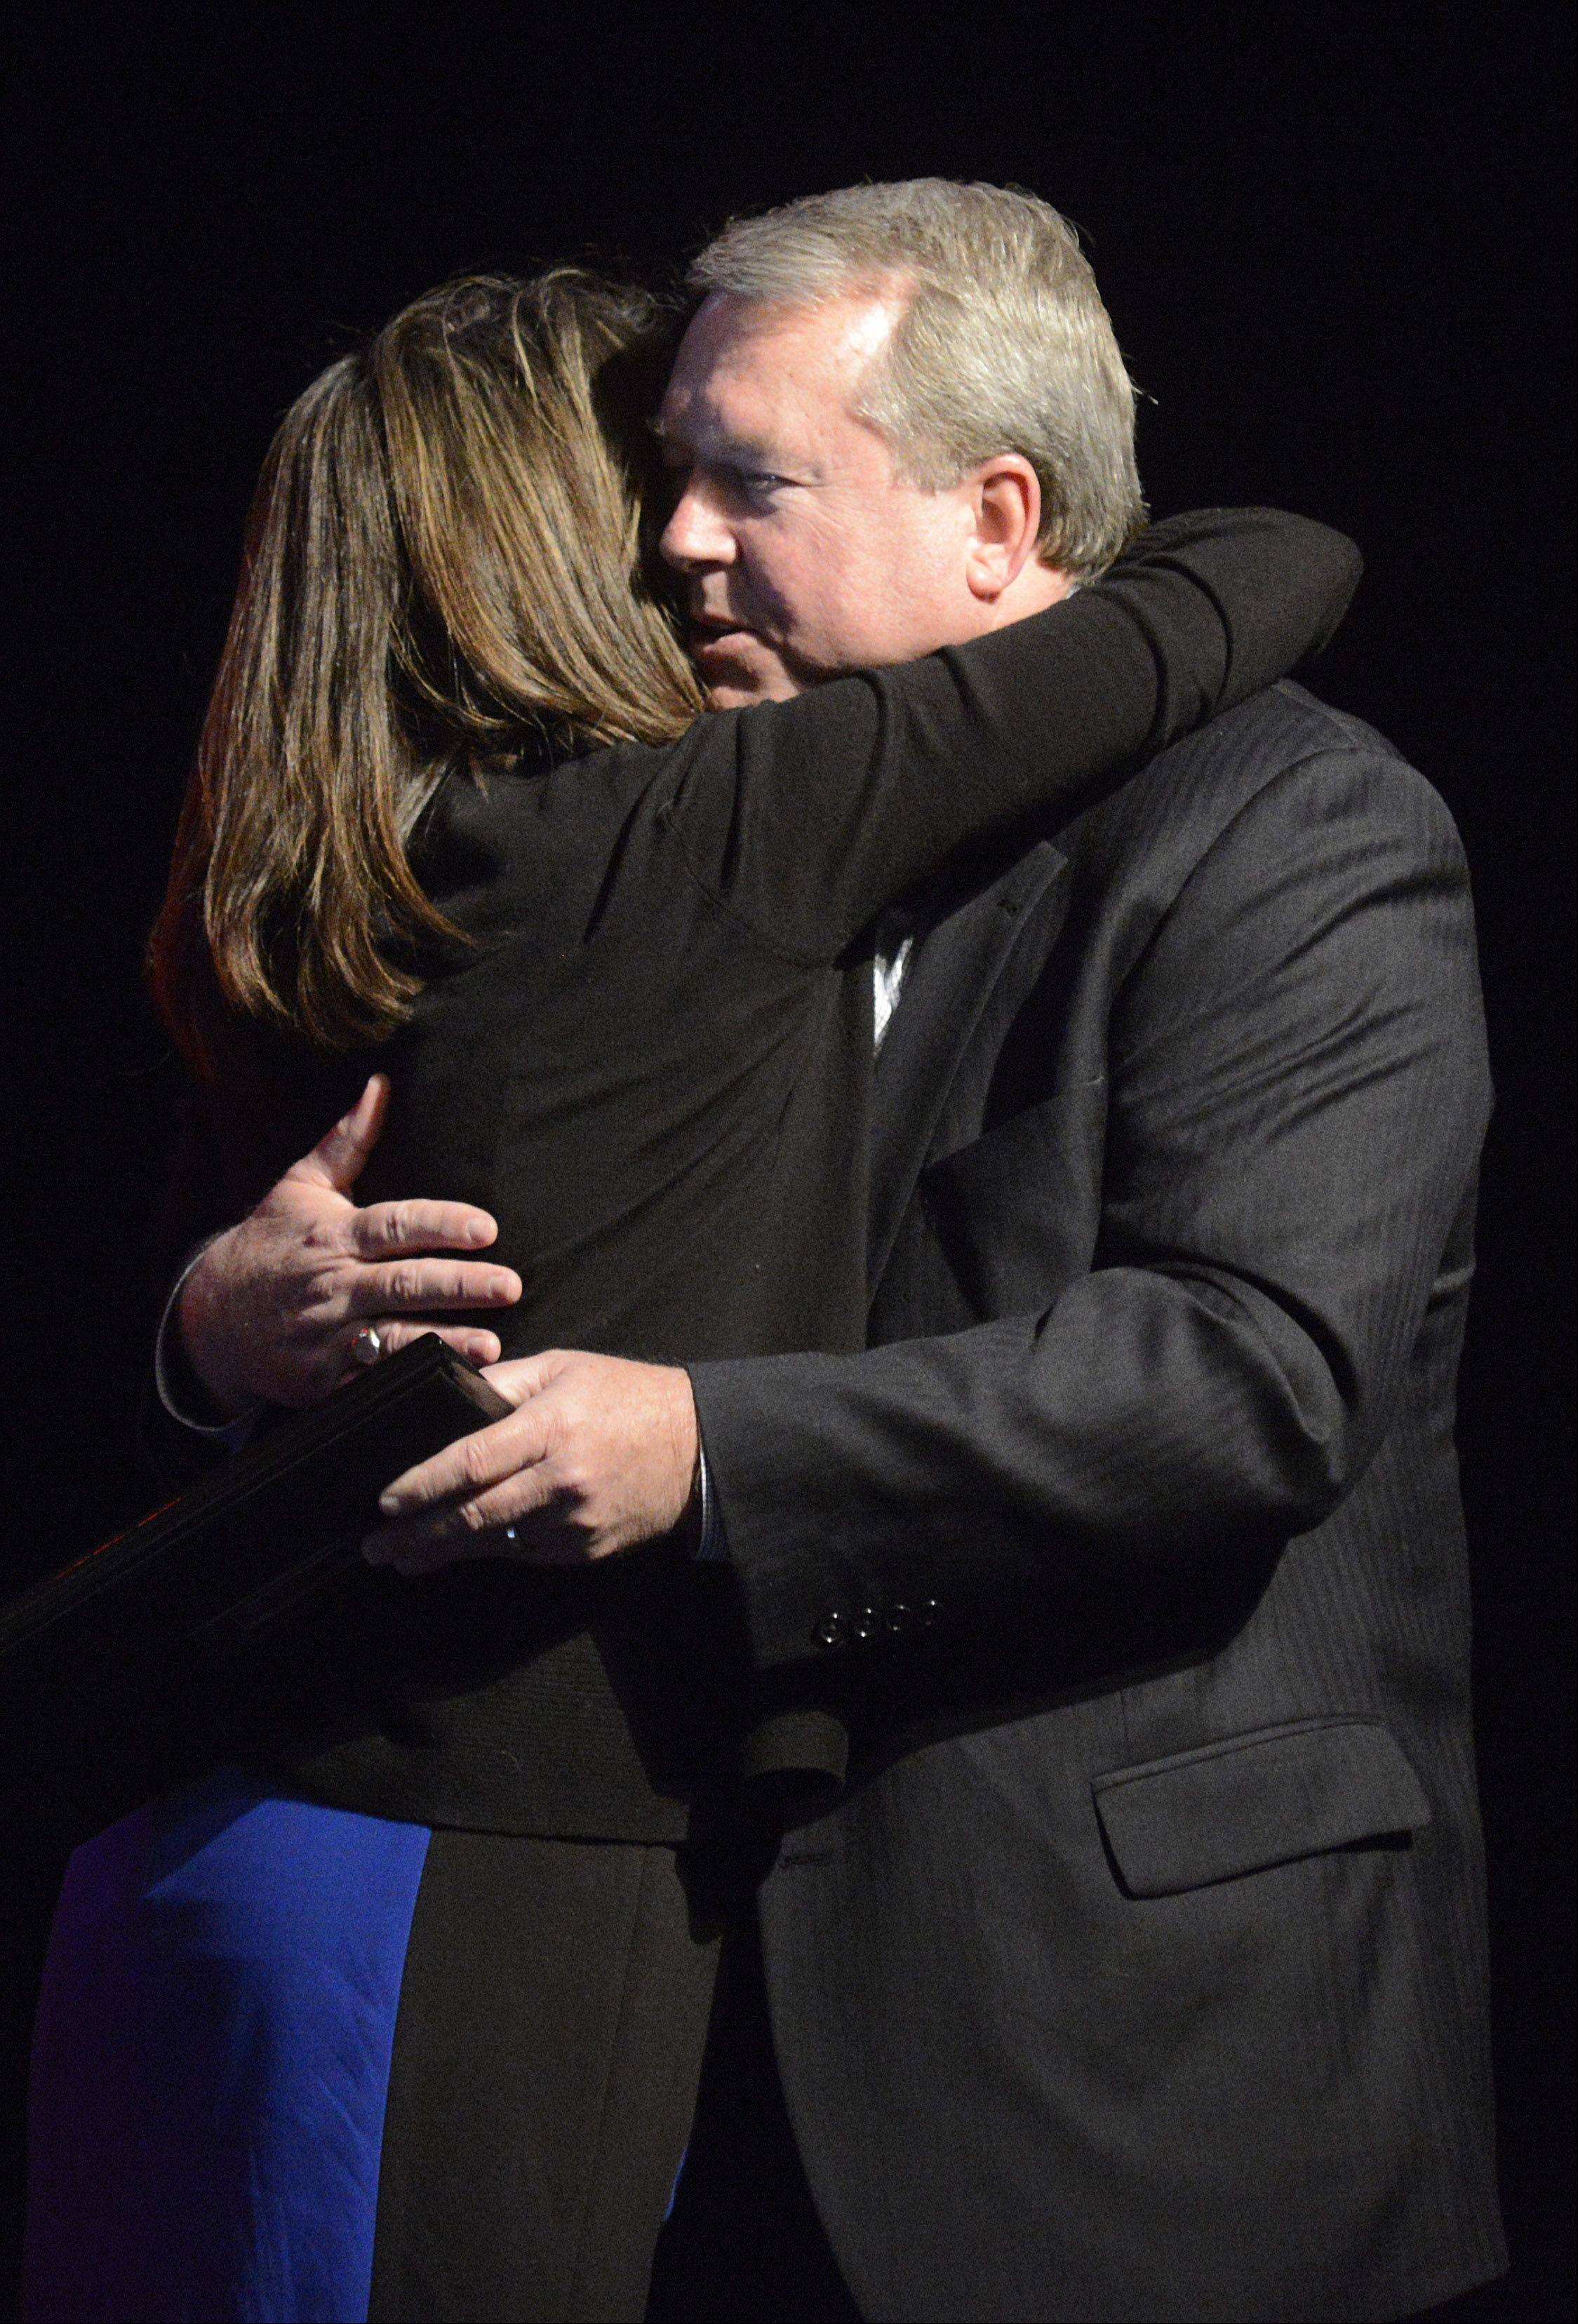 Laura Stoecker/lstoecker@dailyherald.comSt. Charles Mayor Don DeWitte hugs his wife, Diane, after her speech to him at his farewell party hosted Wednesday at the Arcada Theatre.